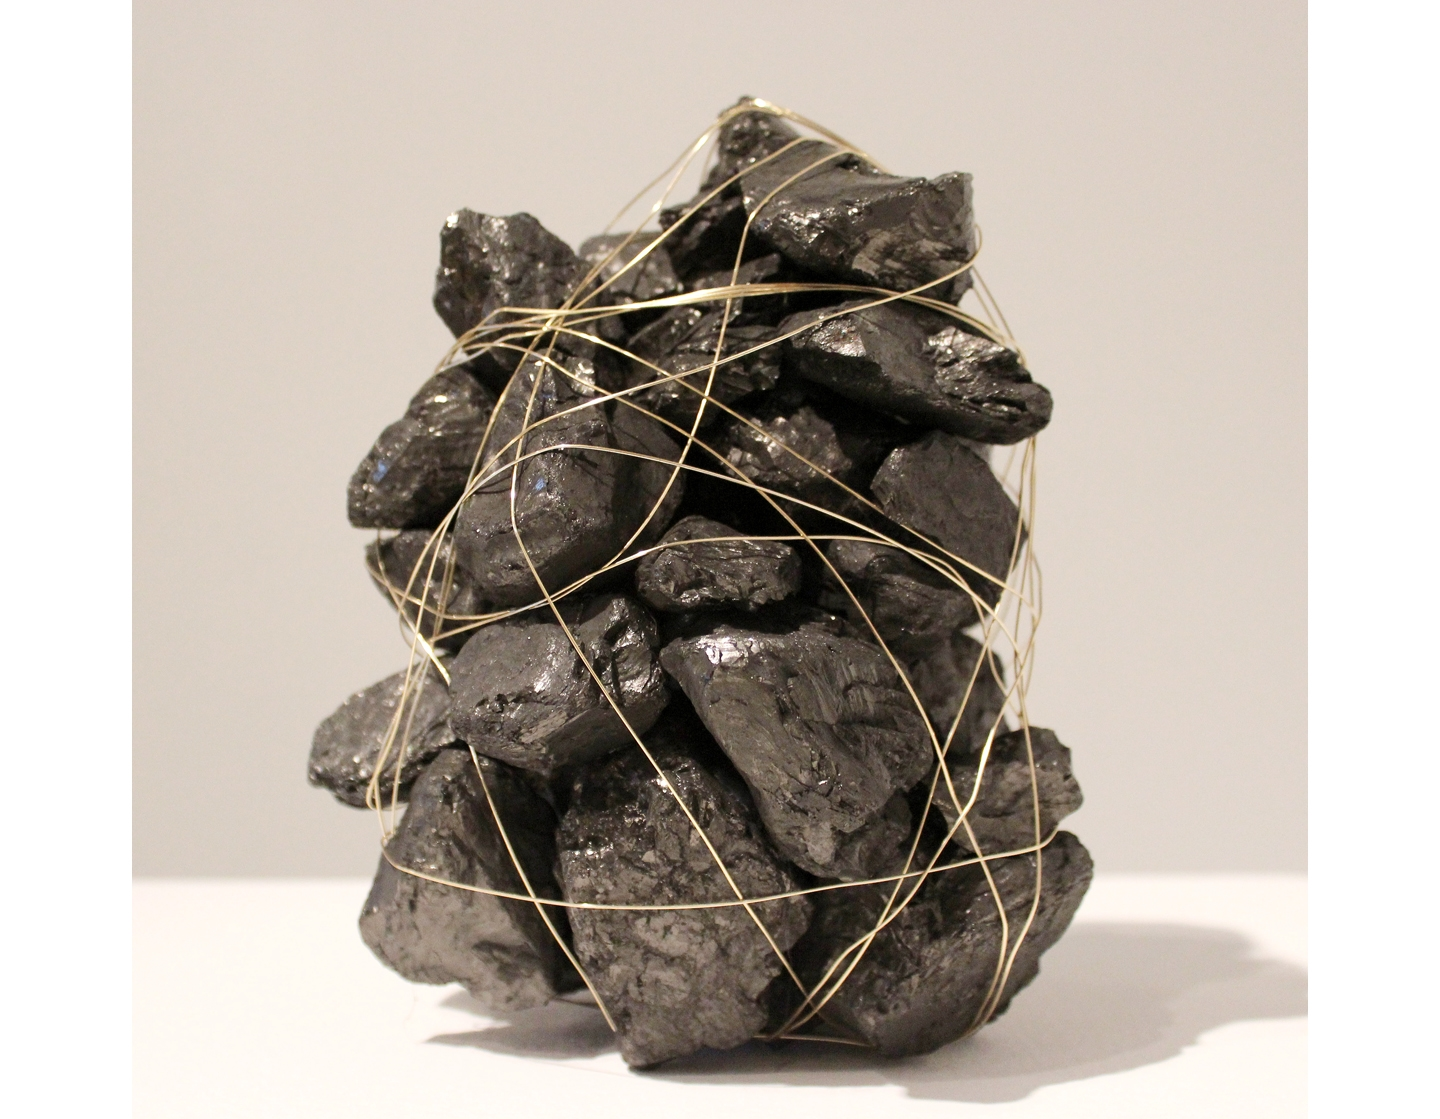 Begging Things to Love You, 2013 Coal, wire 7 x 8 ¾ x 5 ½ inches